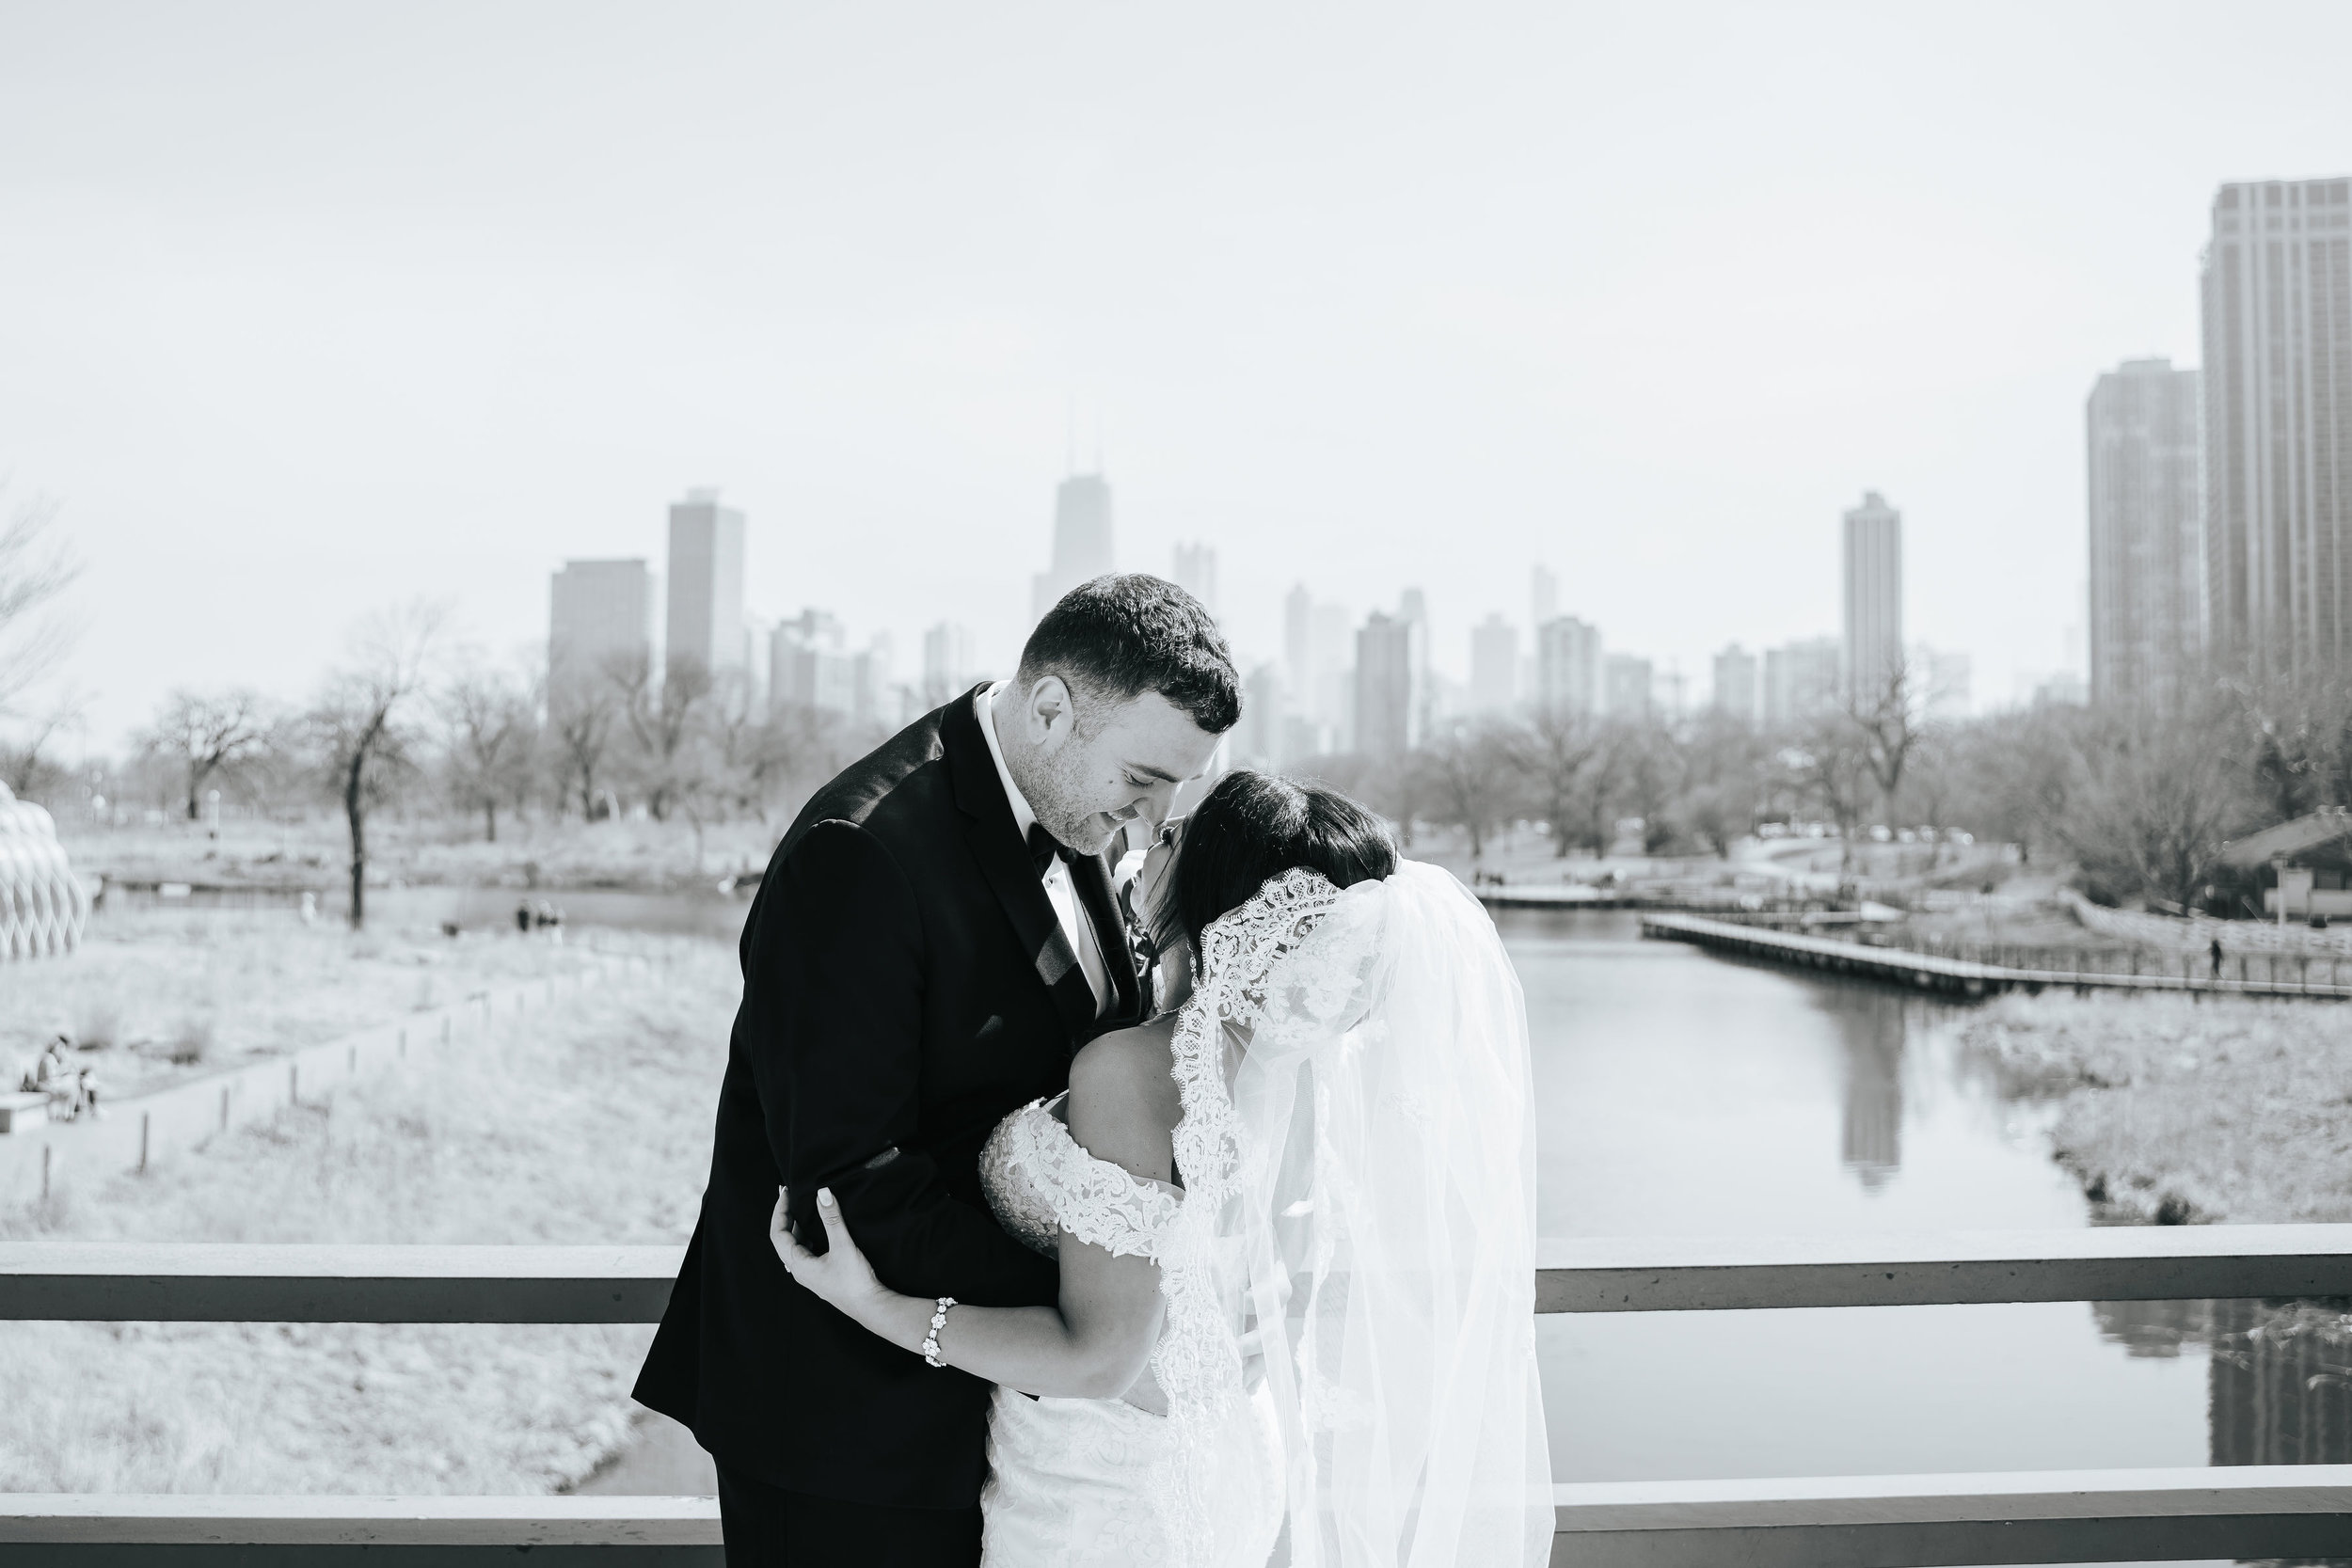 Chicago, IL - Photography by Windy City Productions